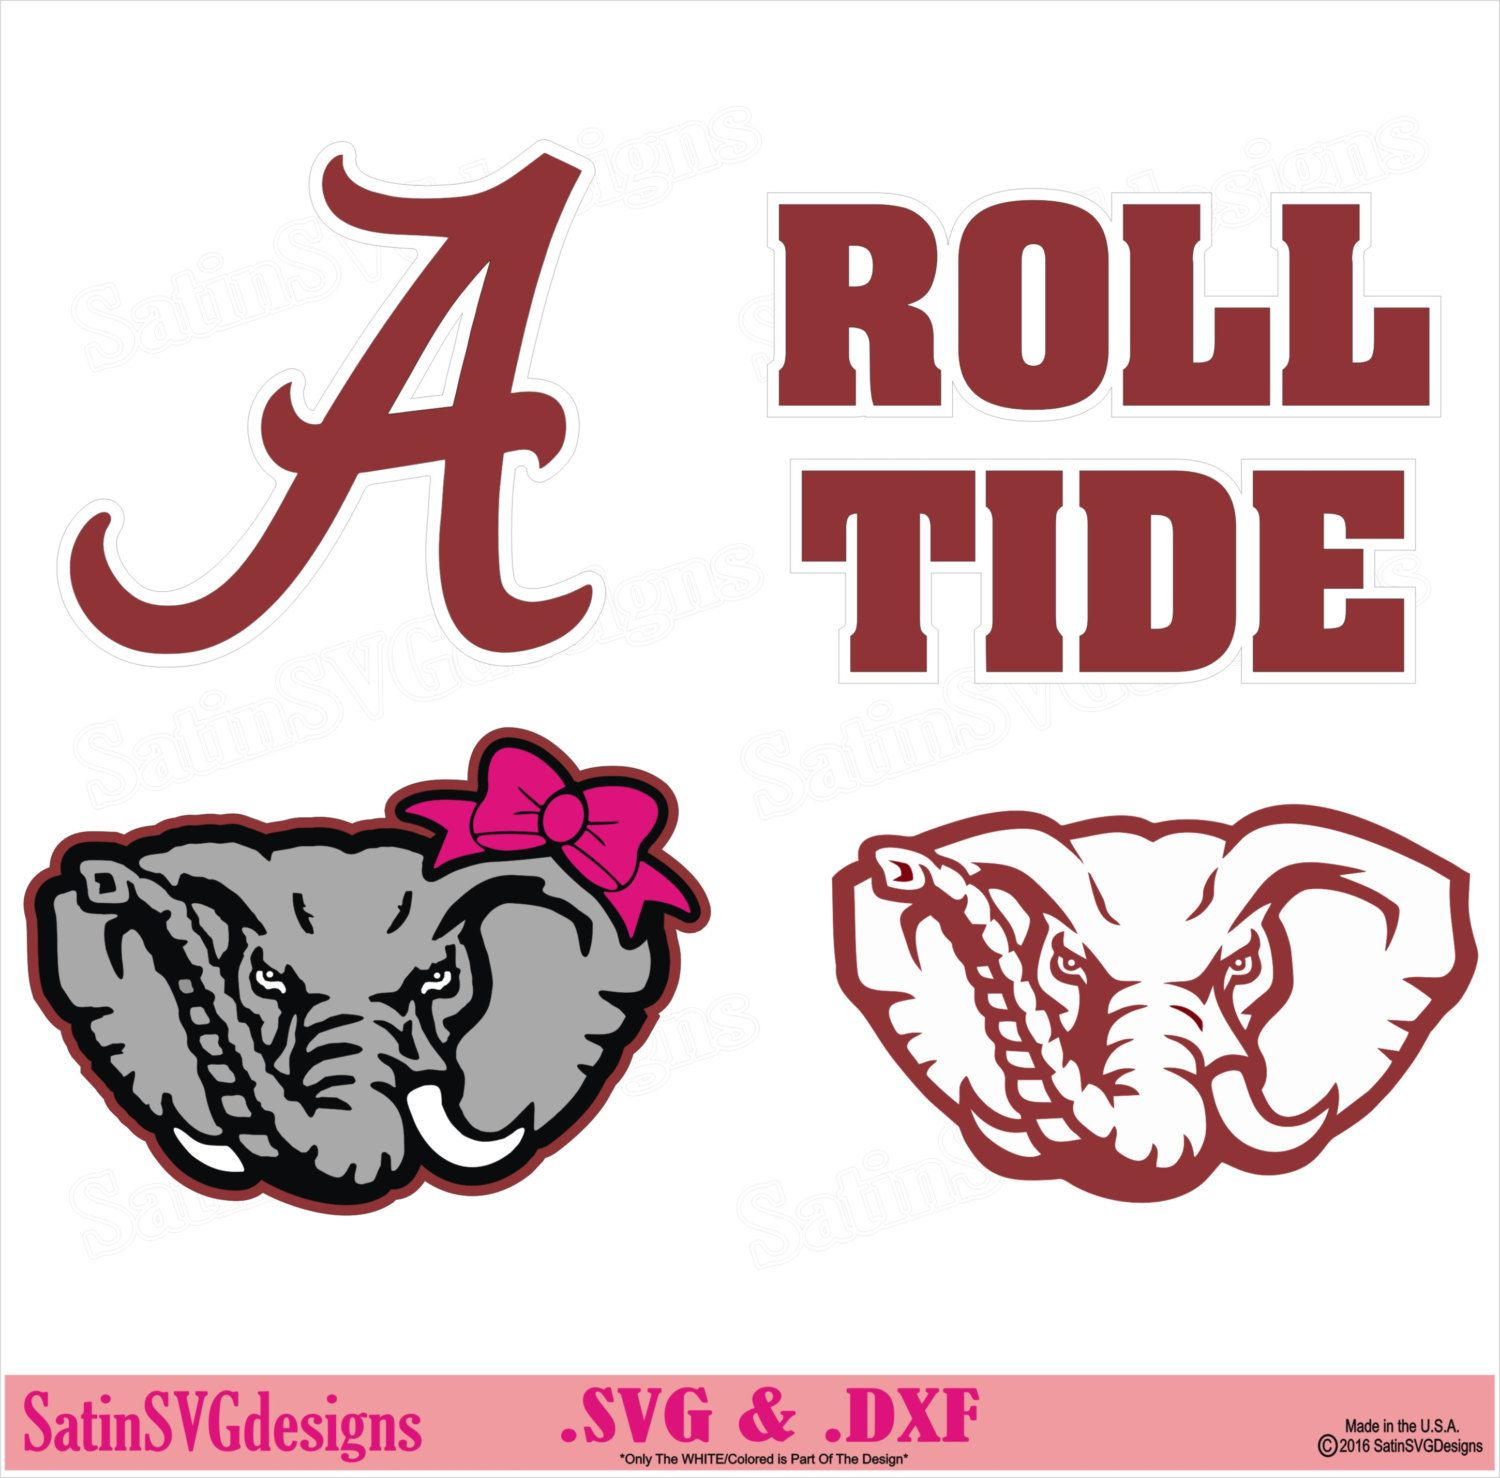 What is the official series record between Arkansas Razorbacks and Alabama Crimson Tide?